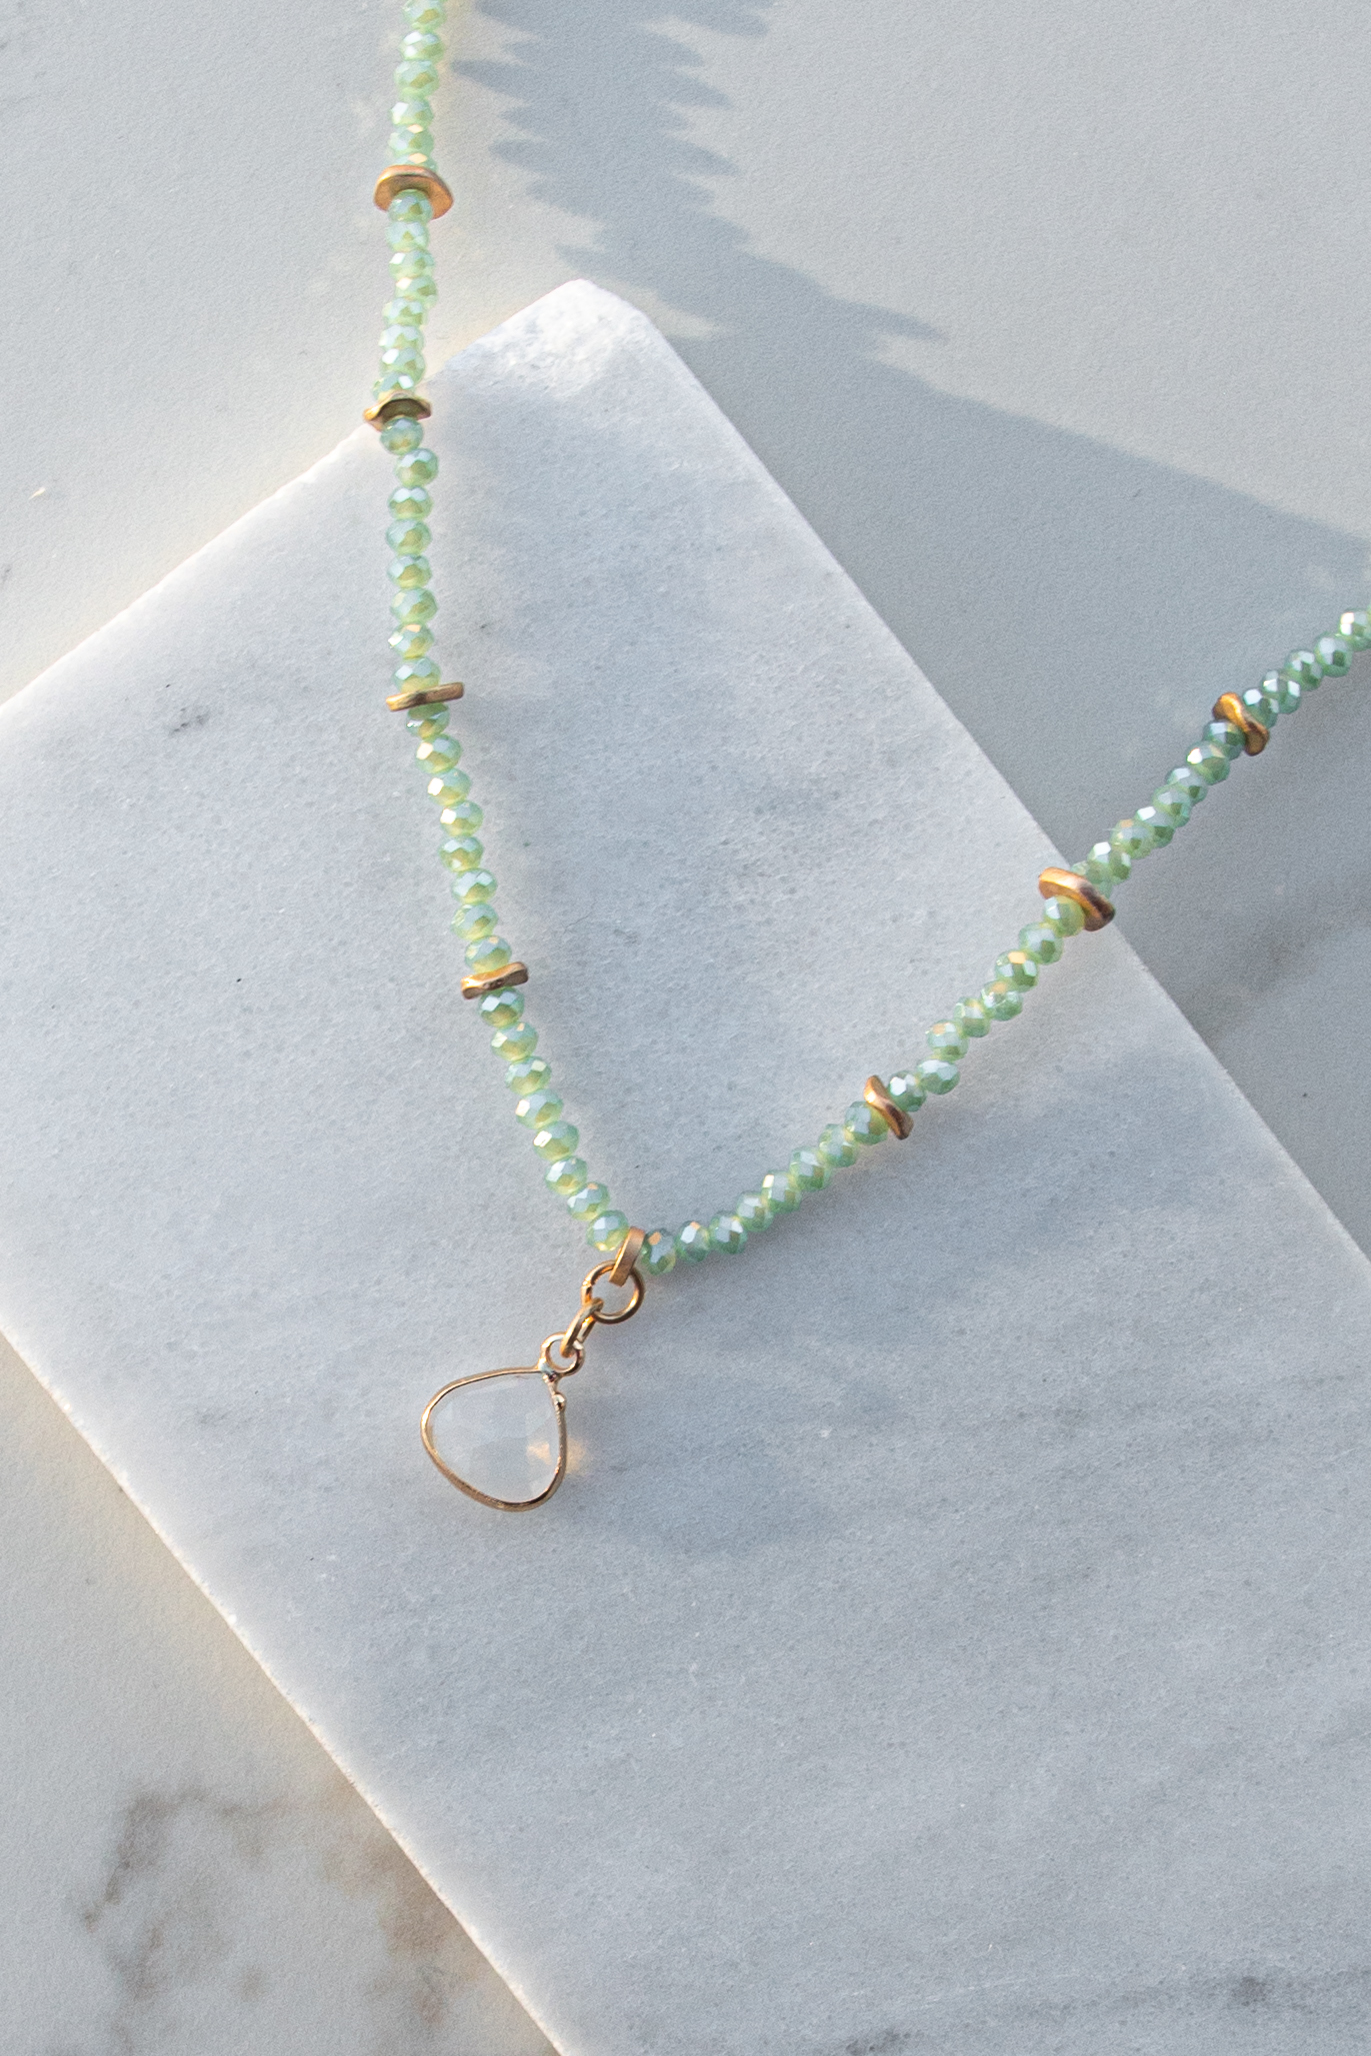 Mint and Gold Beaded Necklace with Crystal Pendant